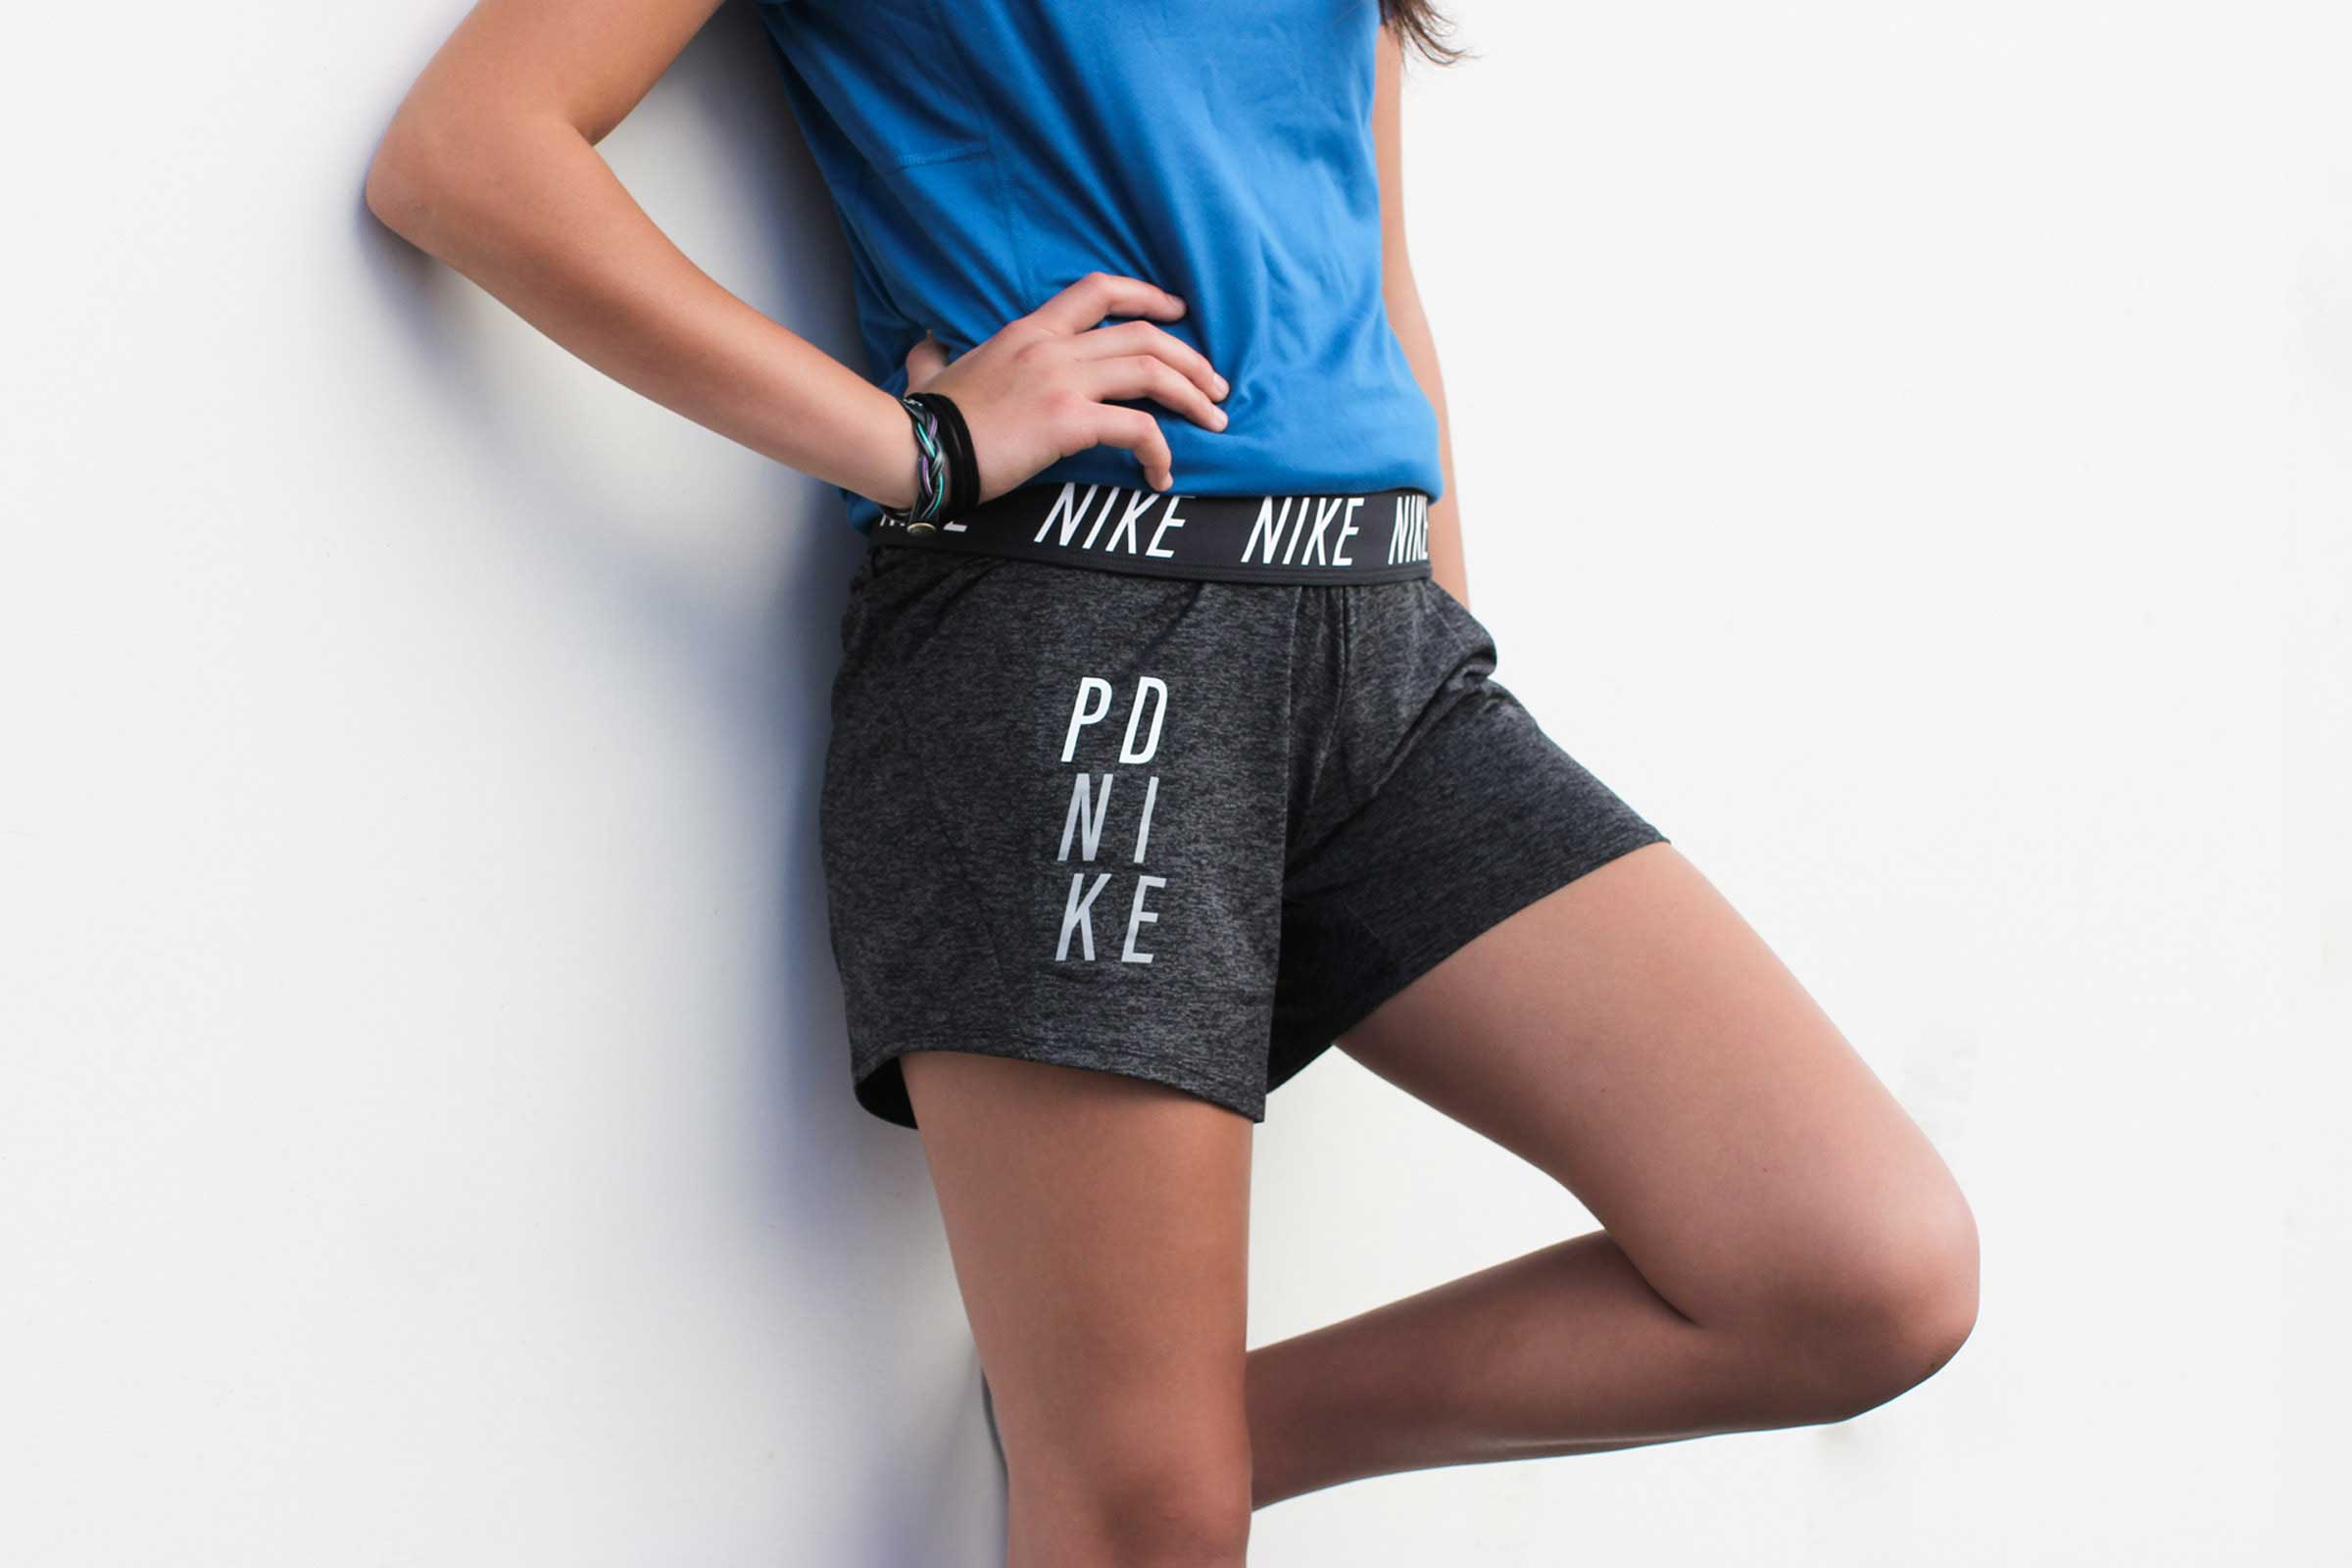 The Packaged Deal Nike Shorts Design